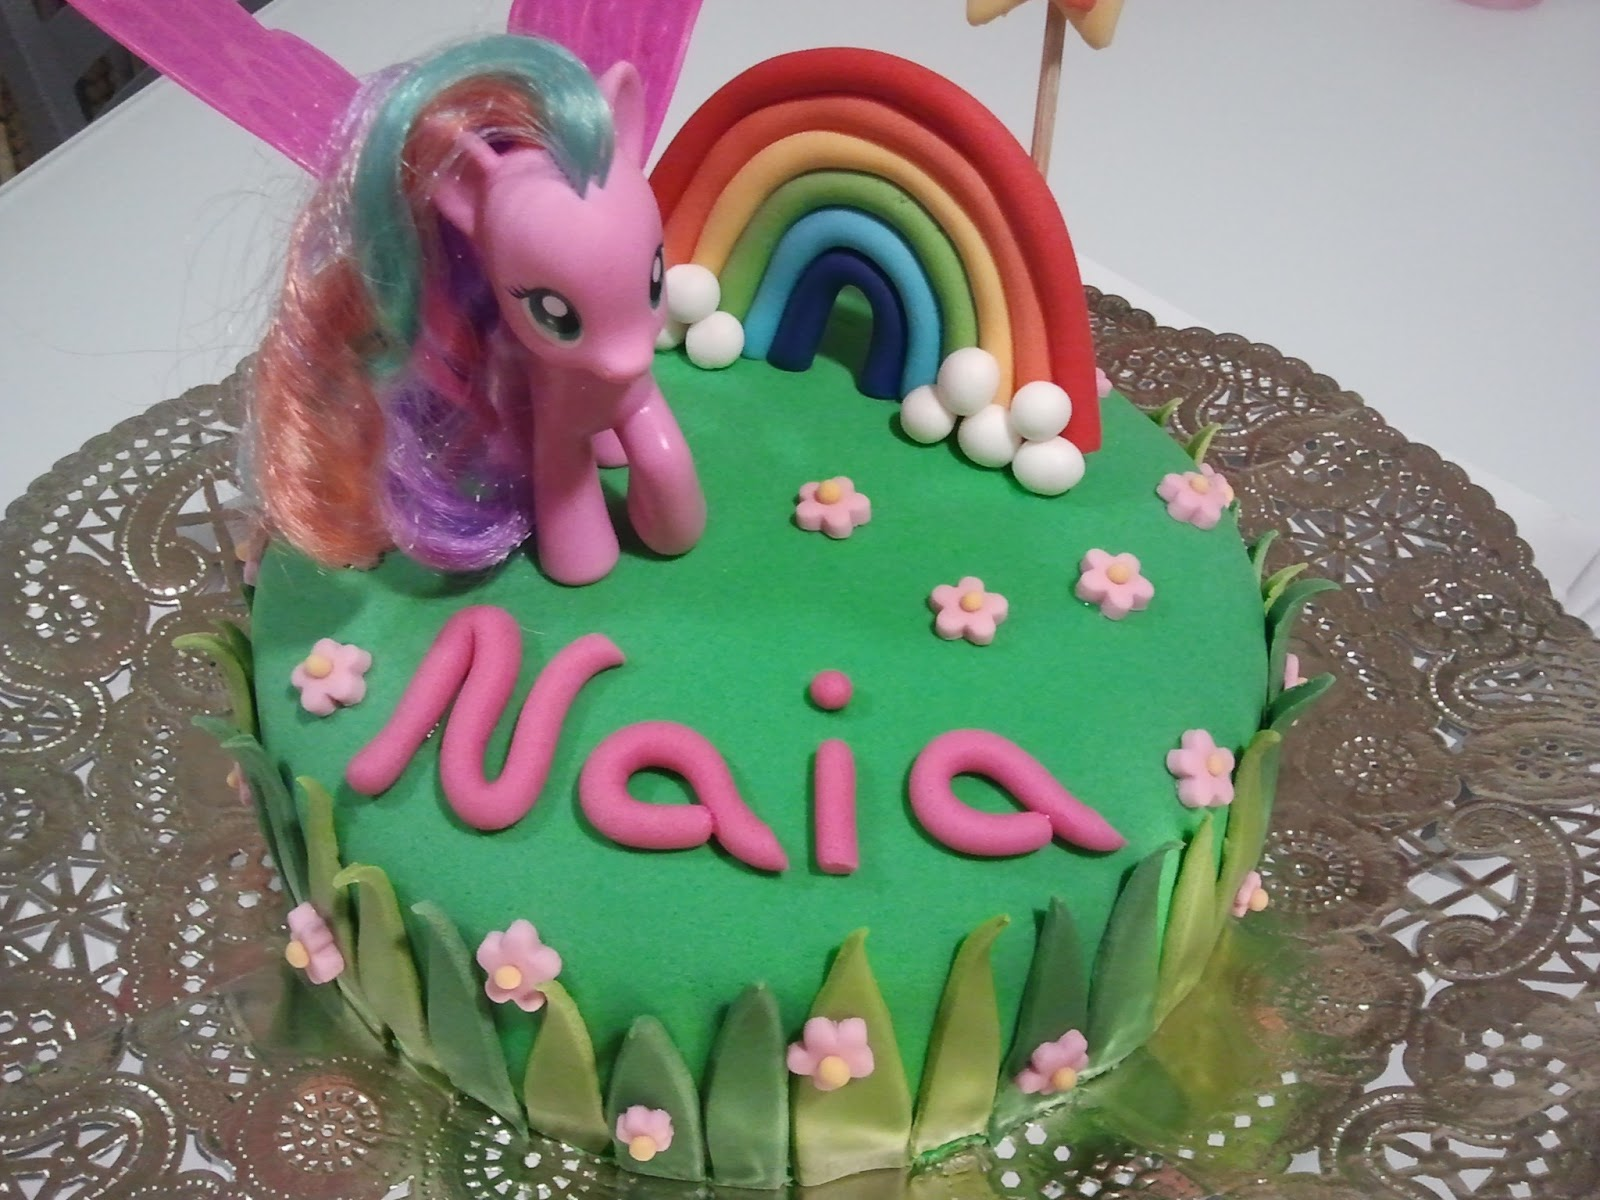 Un somni de sucre: My Little Pony